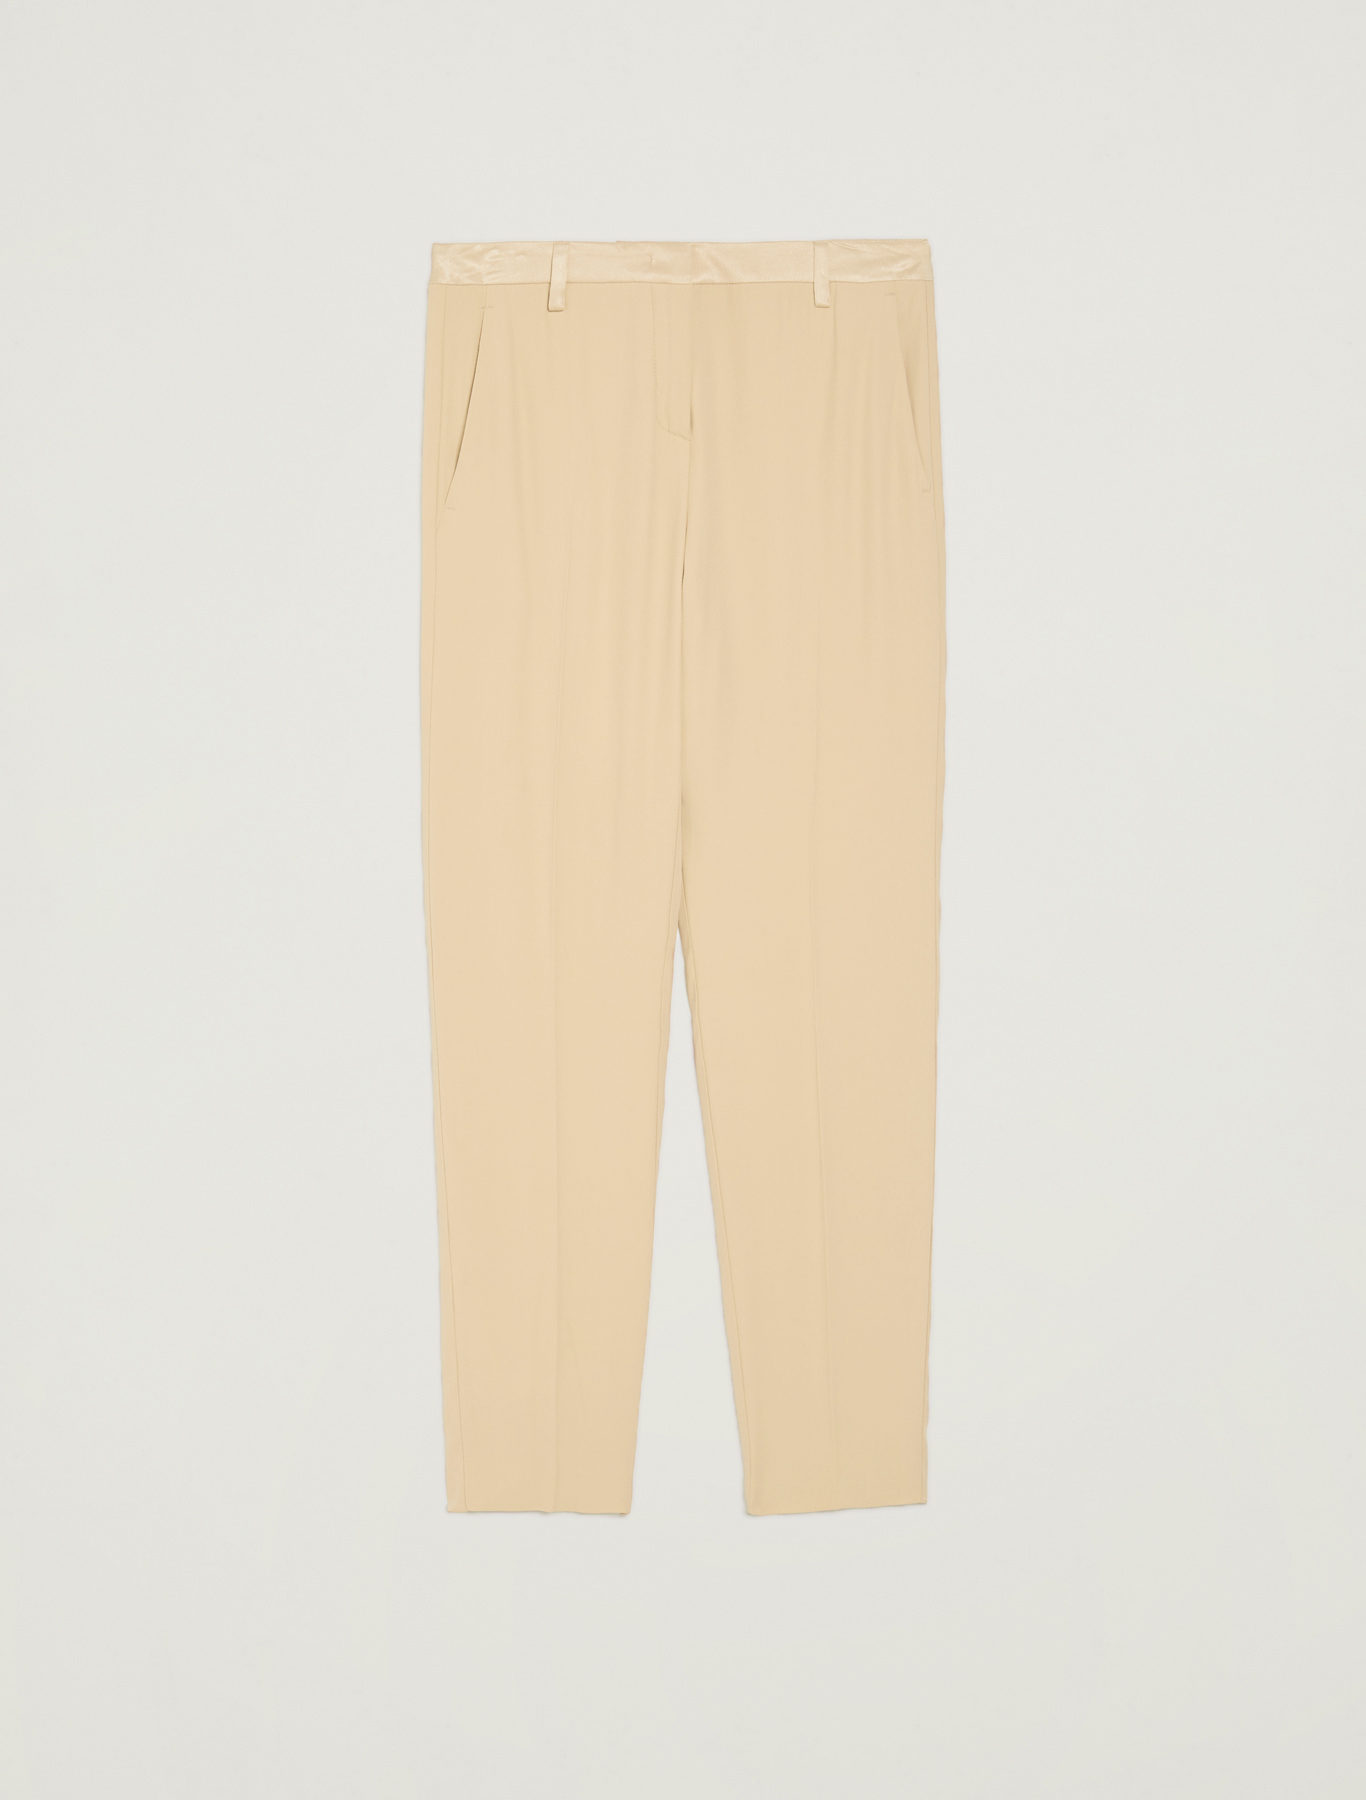 Slim trousers in envers satin - beige - pennyblack